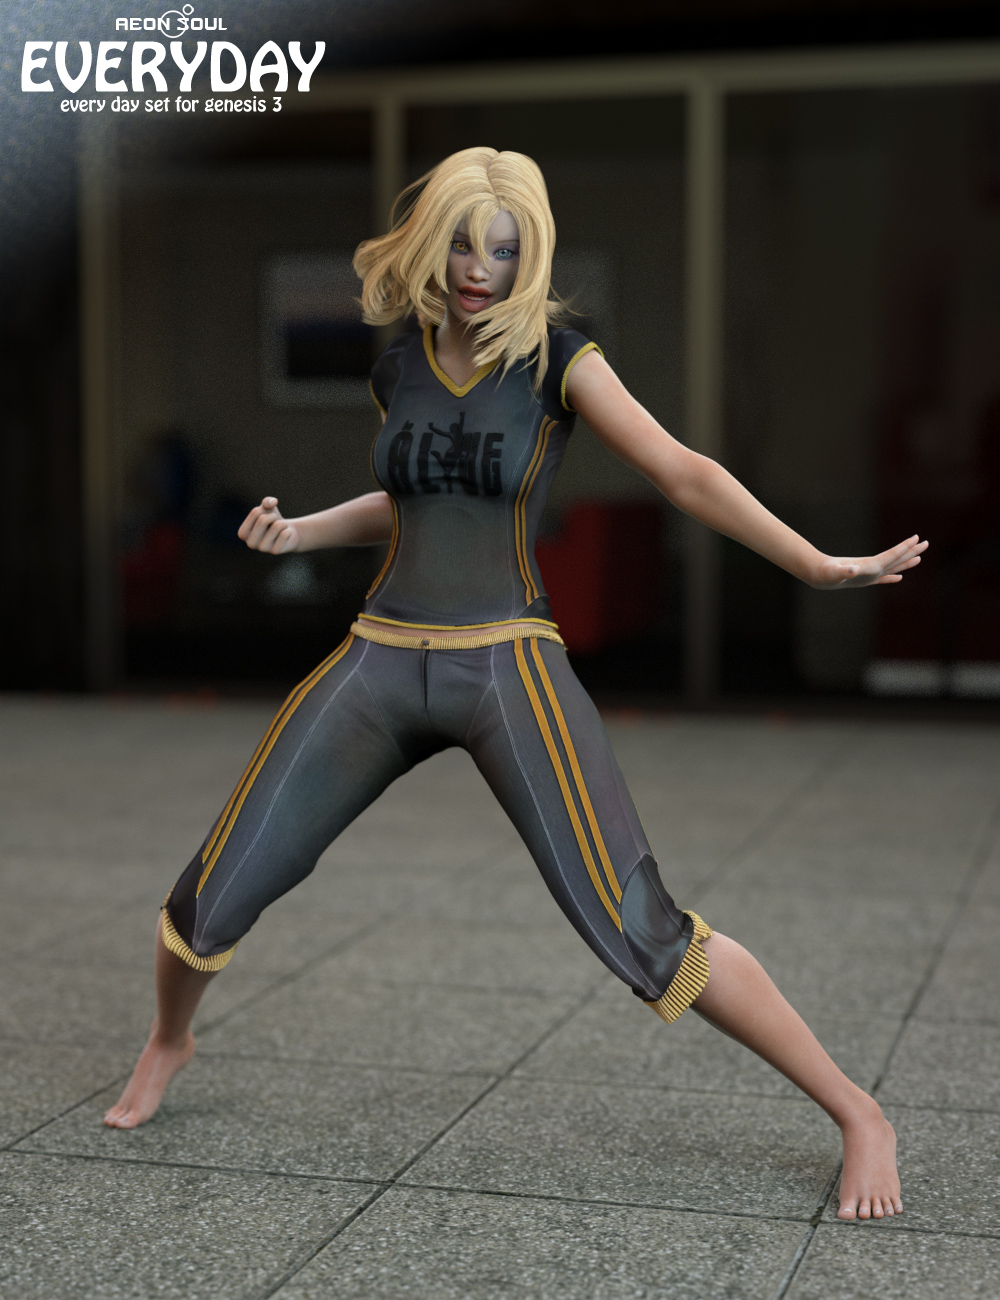 EveryDay for Genesis 3 Female(s) by: Aeon Soul, 3D Models by Daz 3D